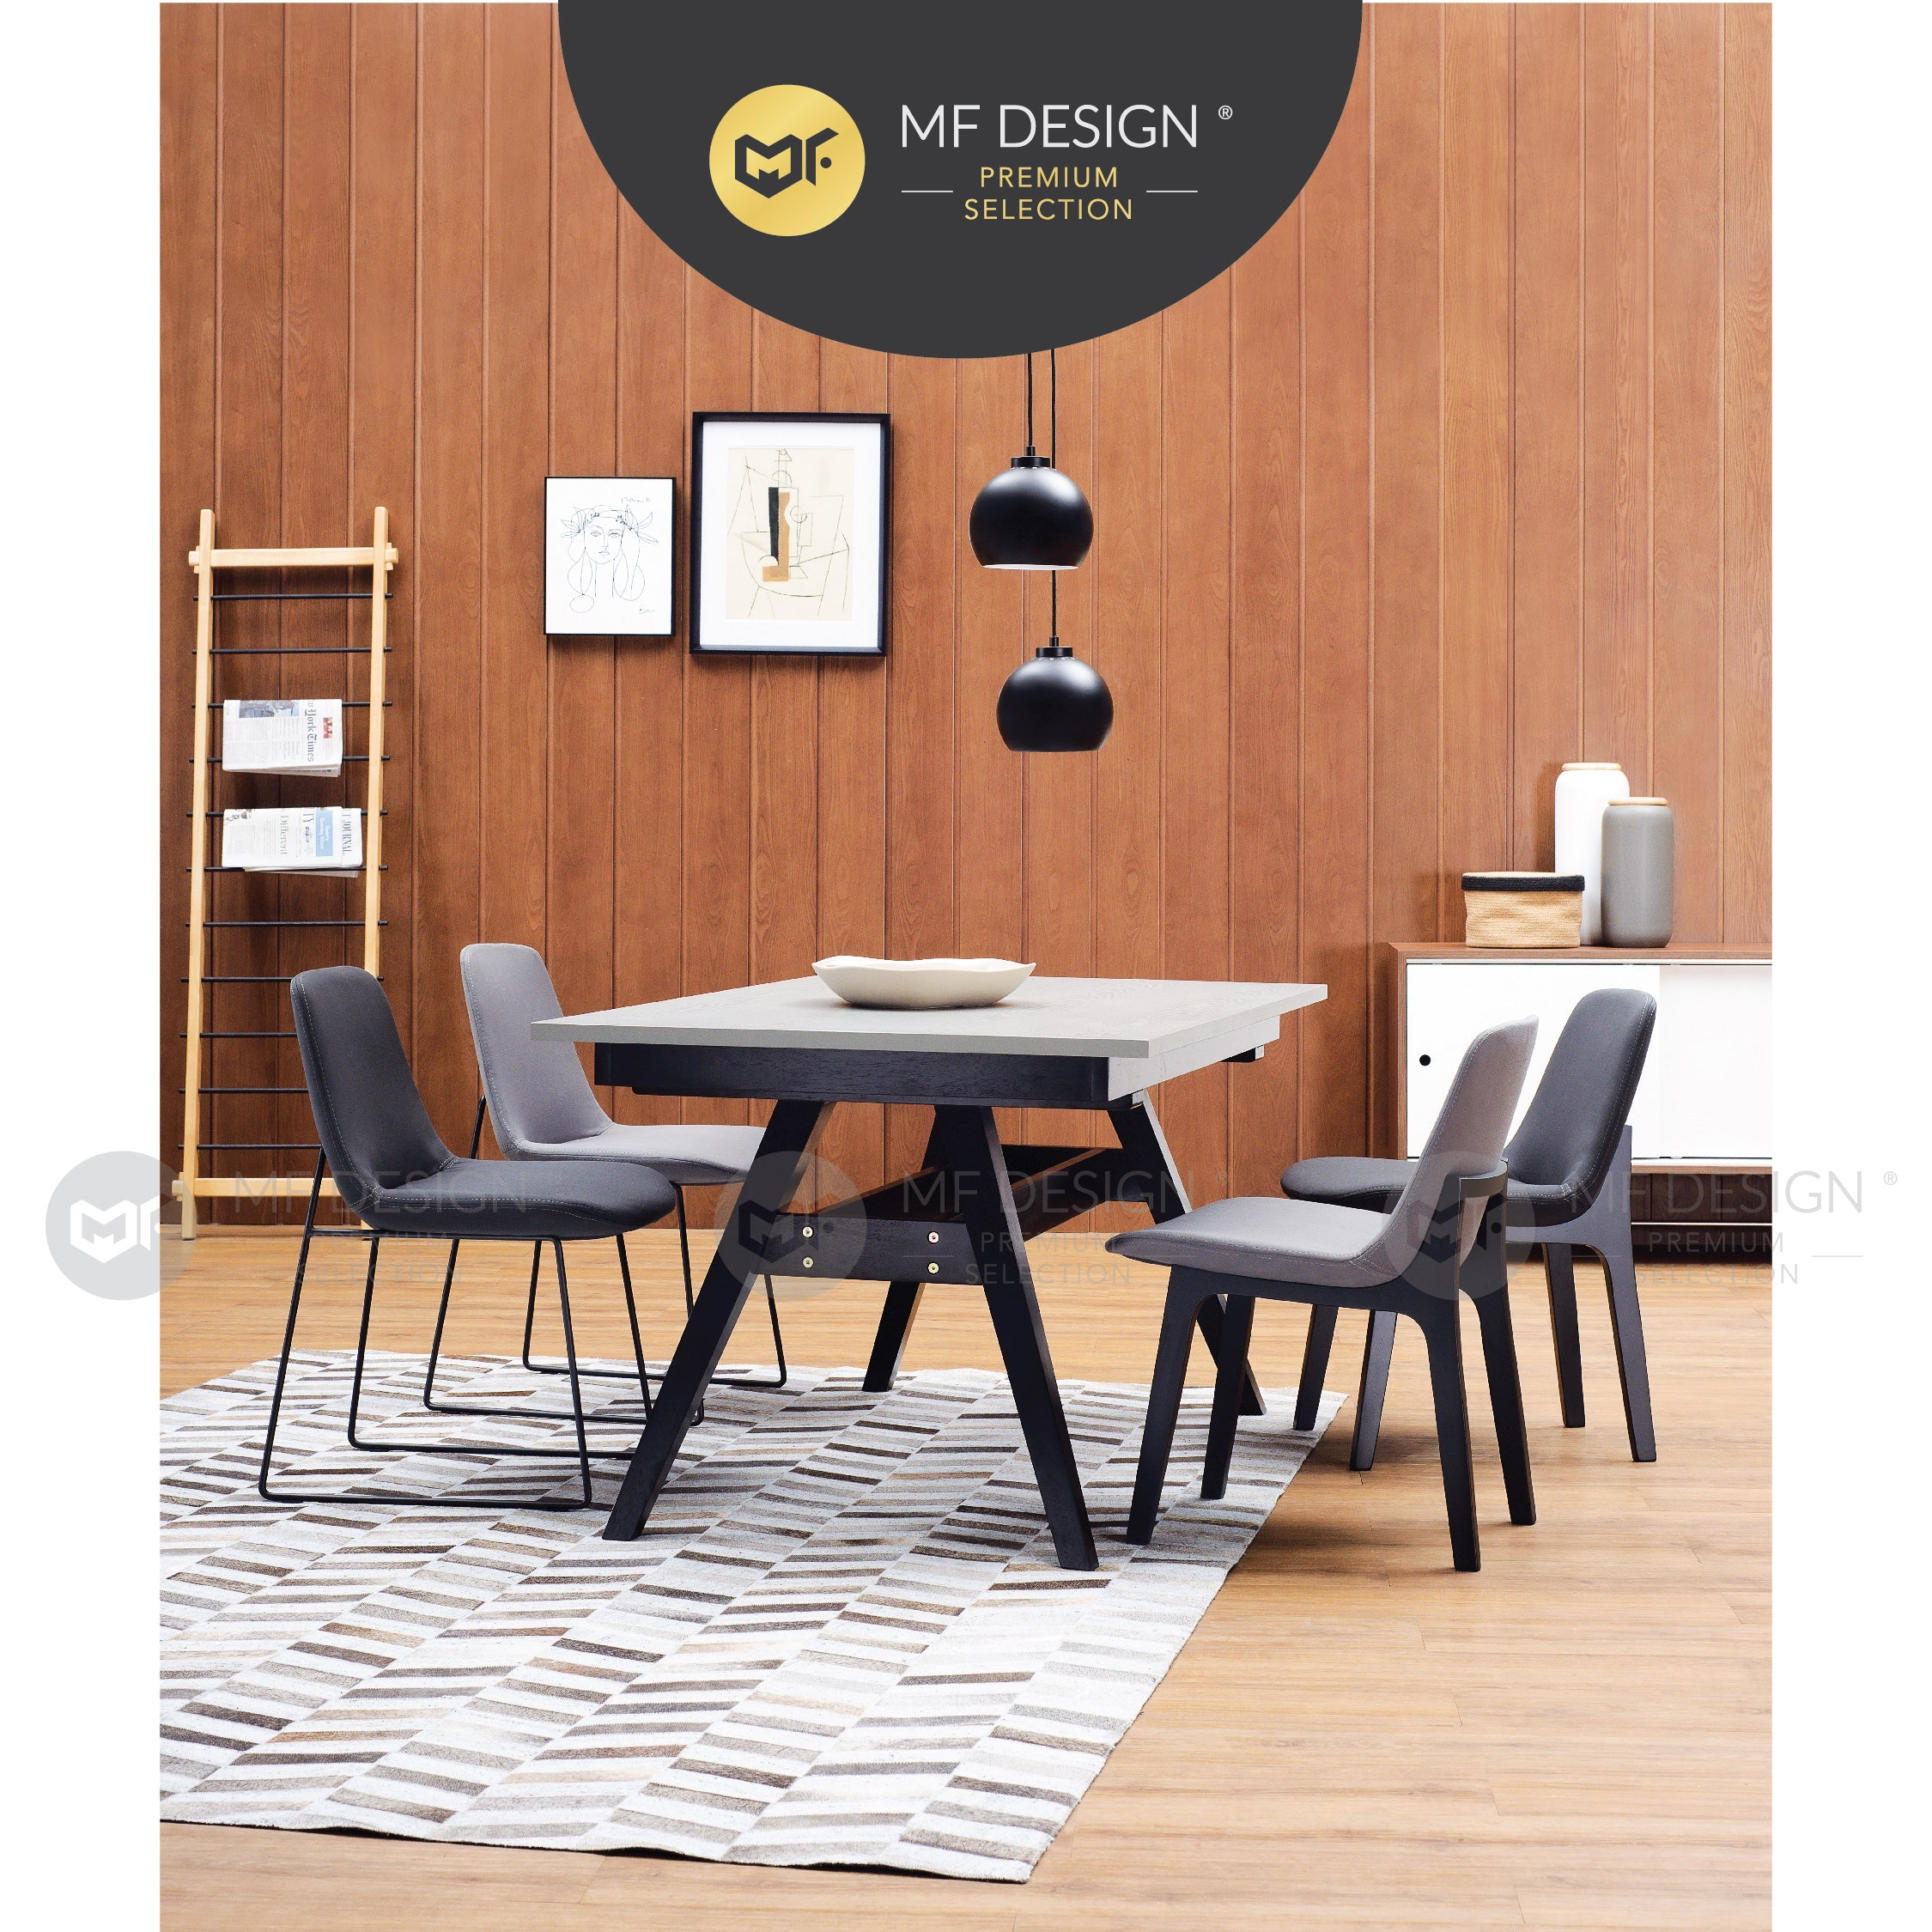 MFD Premium Aiman Dining Chair (Metal) / Wooden Chair / Solid Rubber Wood / Kerusi Makan Kayu Getah / Living Room